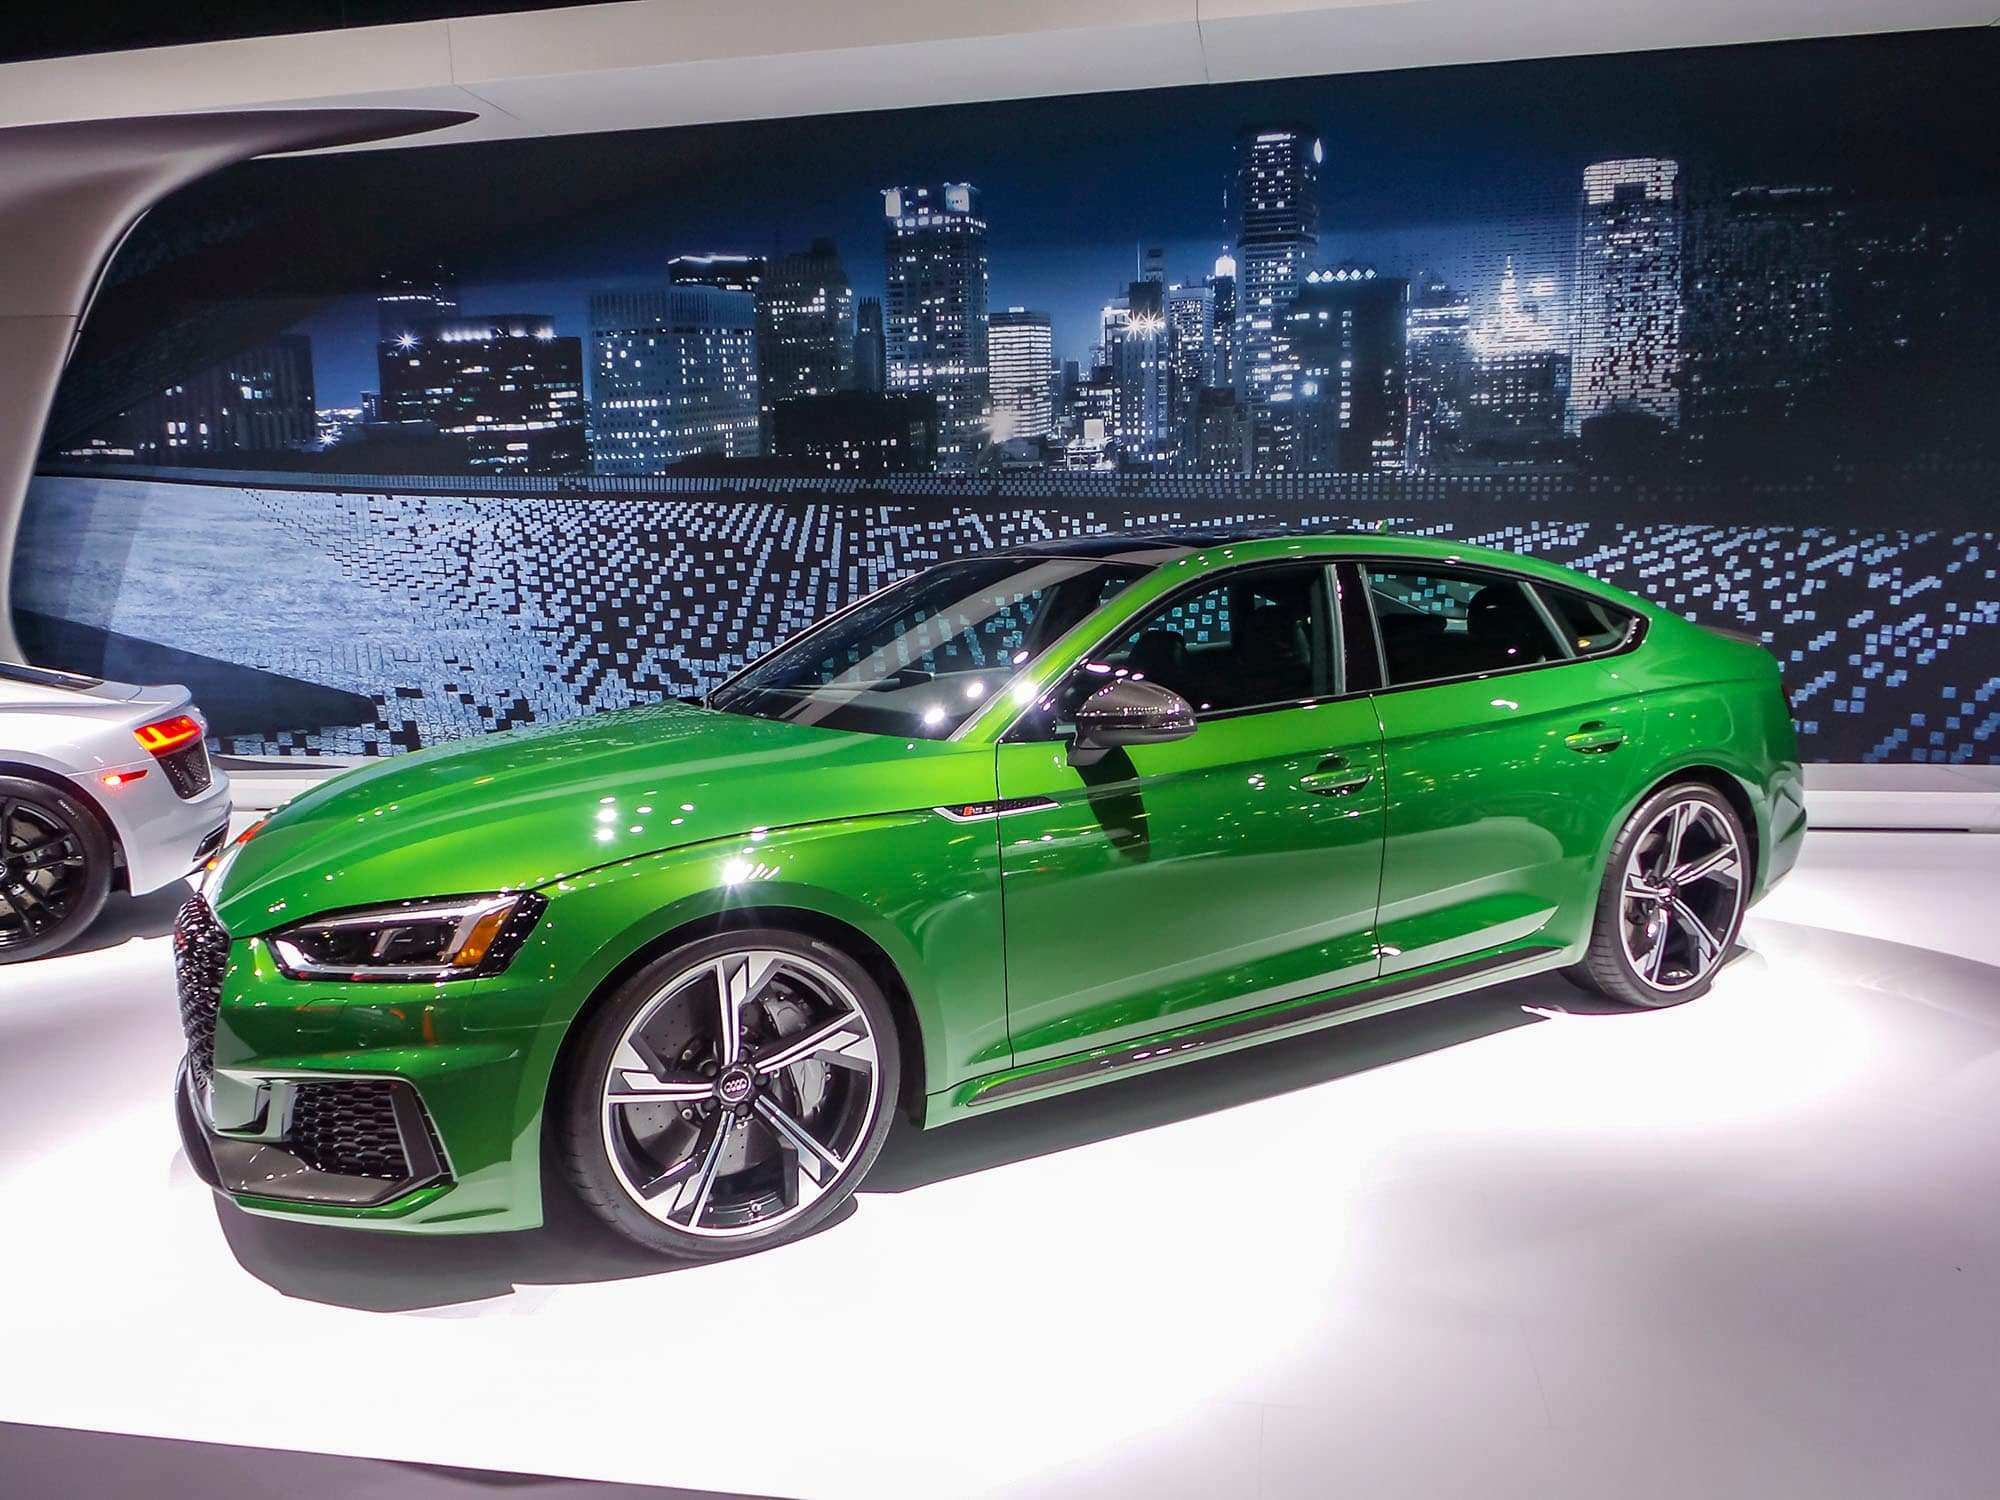 47 Concept of 2019 Audi Phev Research New by 2019 Audi Phev